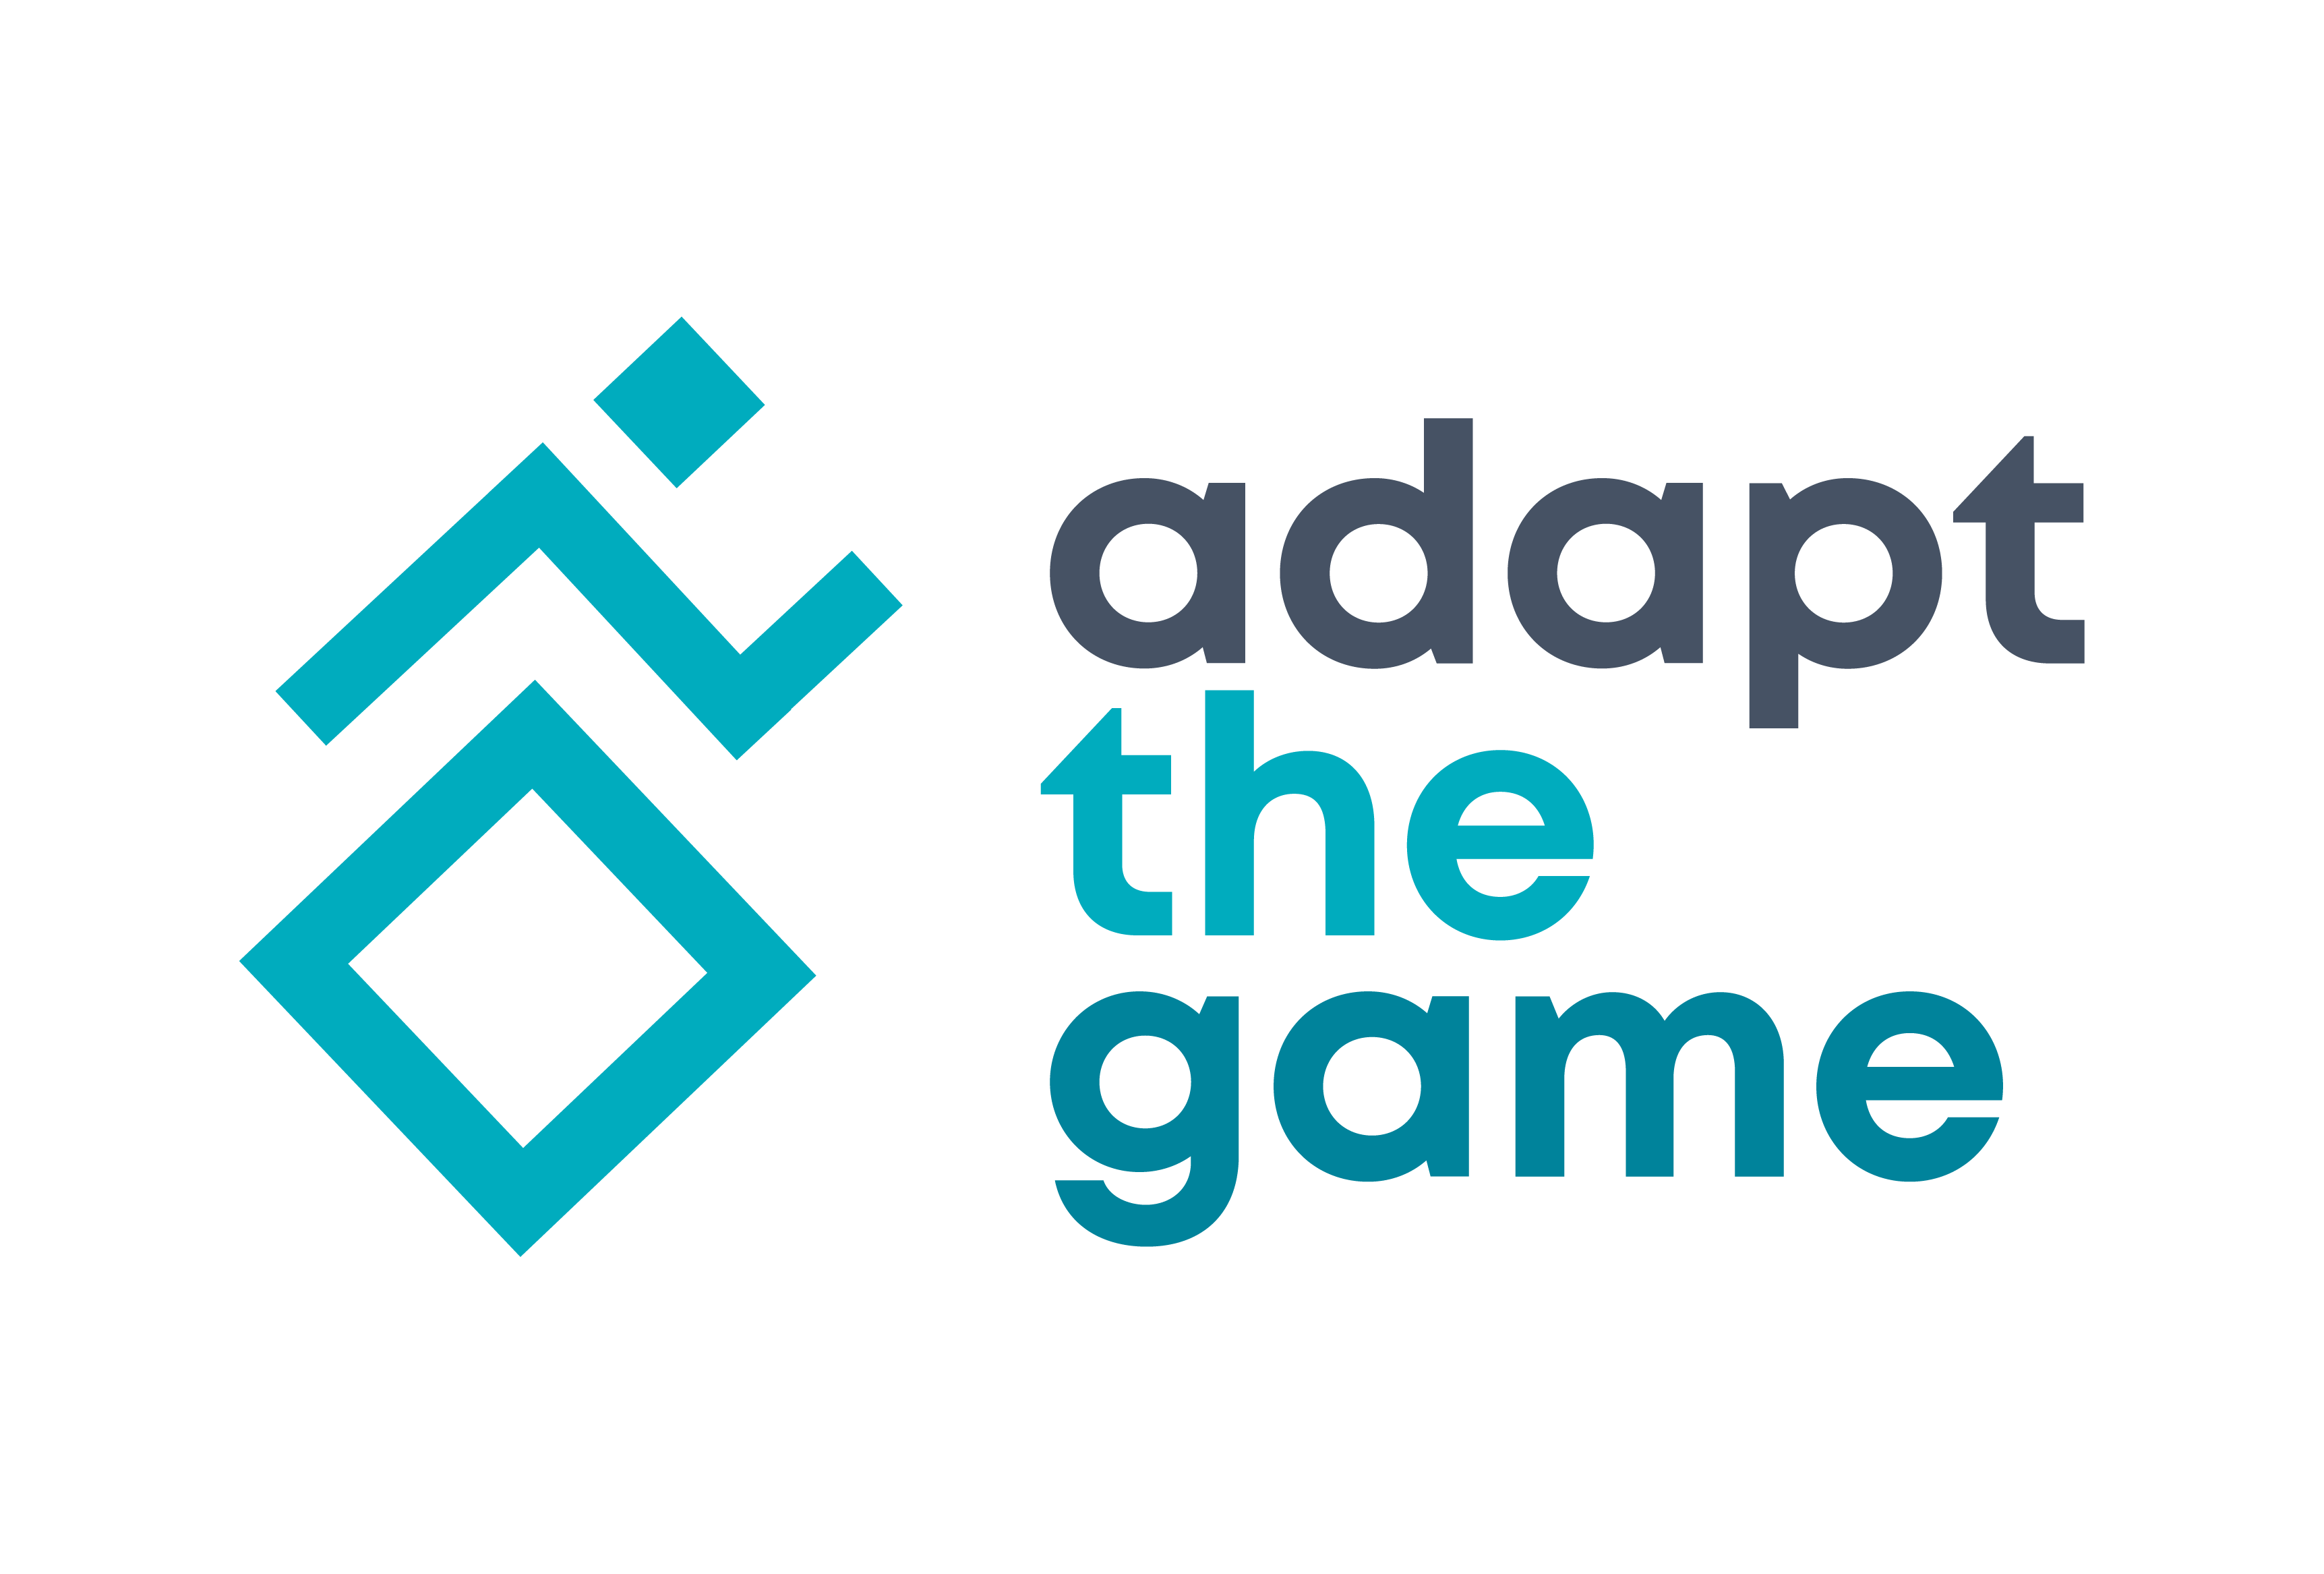 Adapt The Game